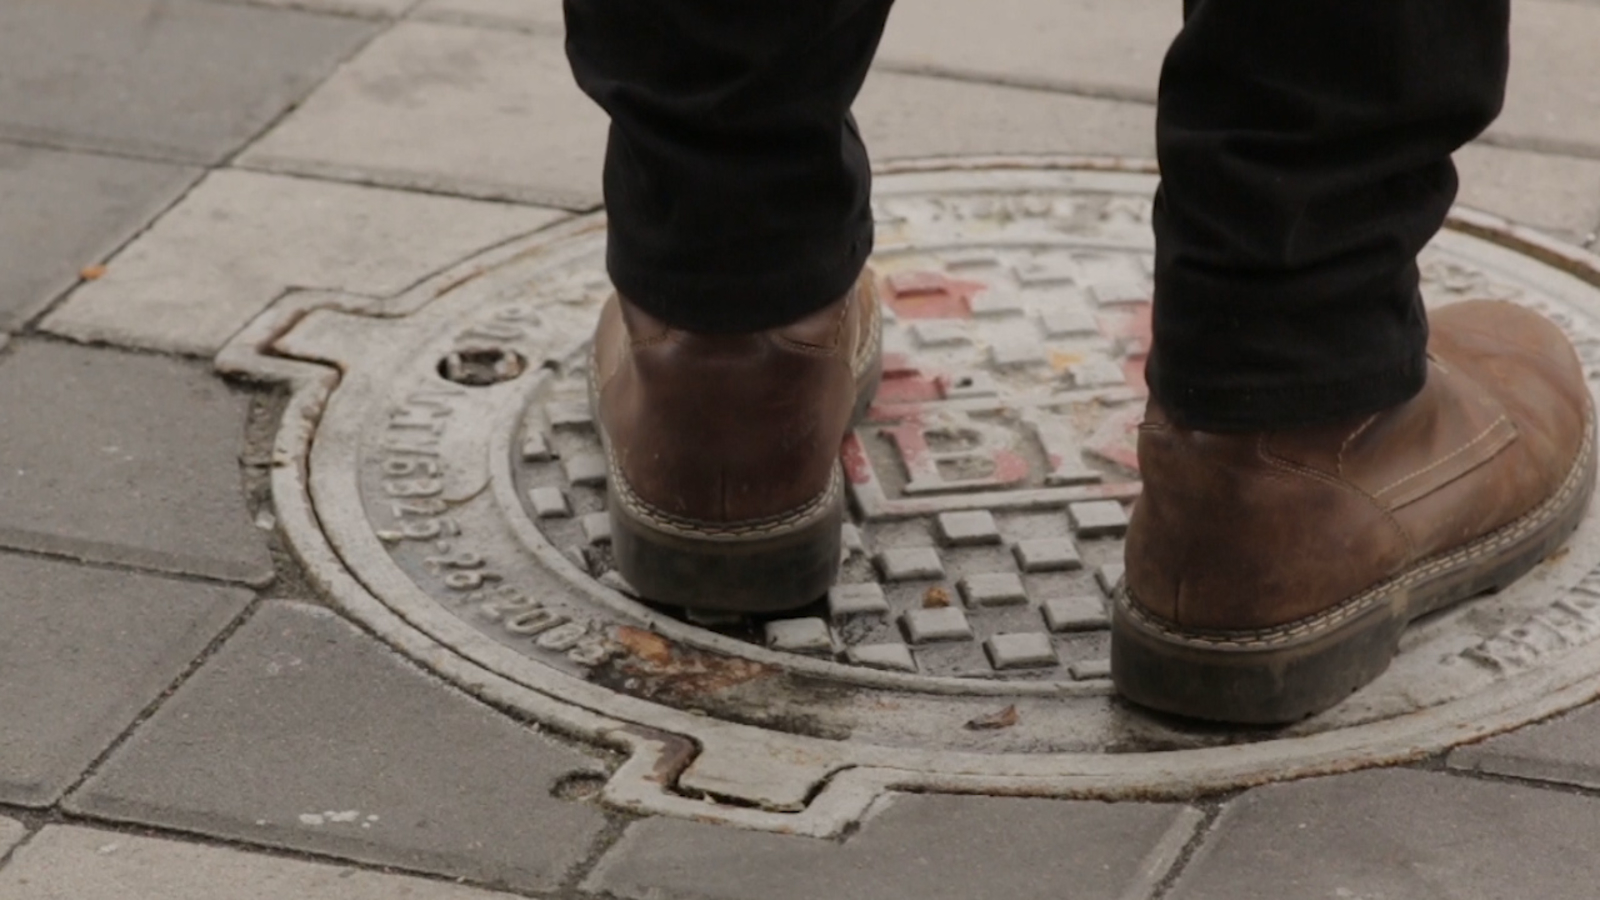 Gender-neutral language: Berkeley changes manholes to 'maintenance holes,' brother and sister to 'sibling'